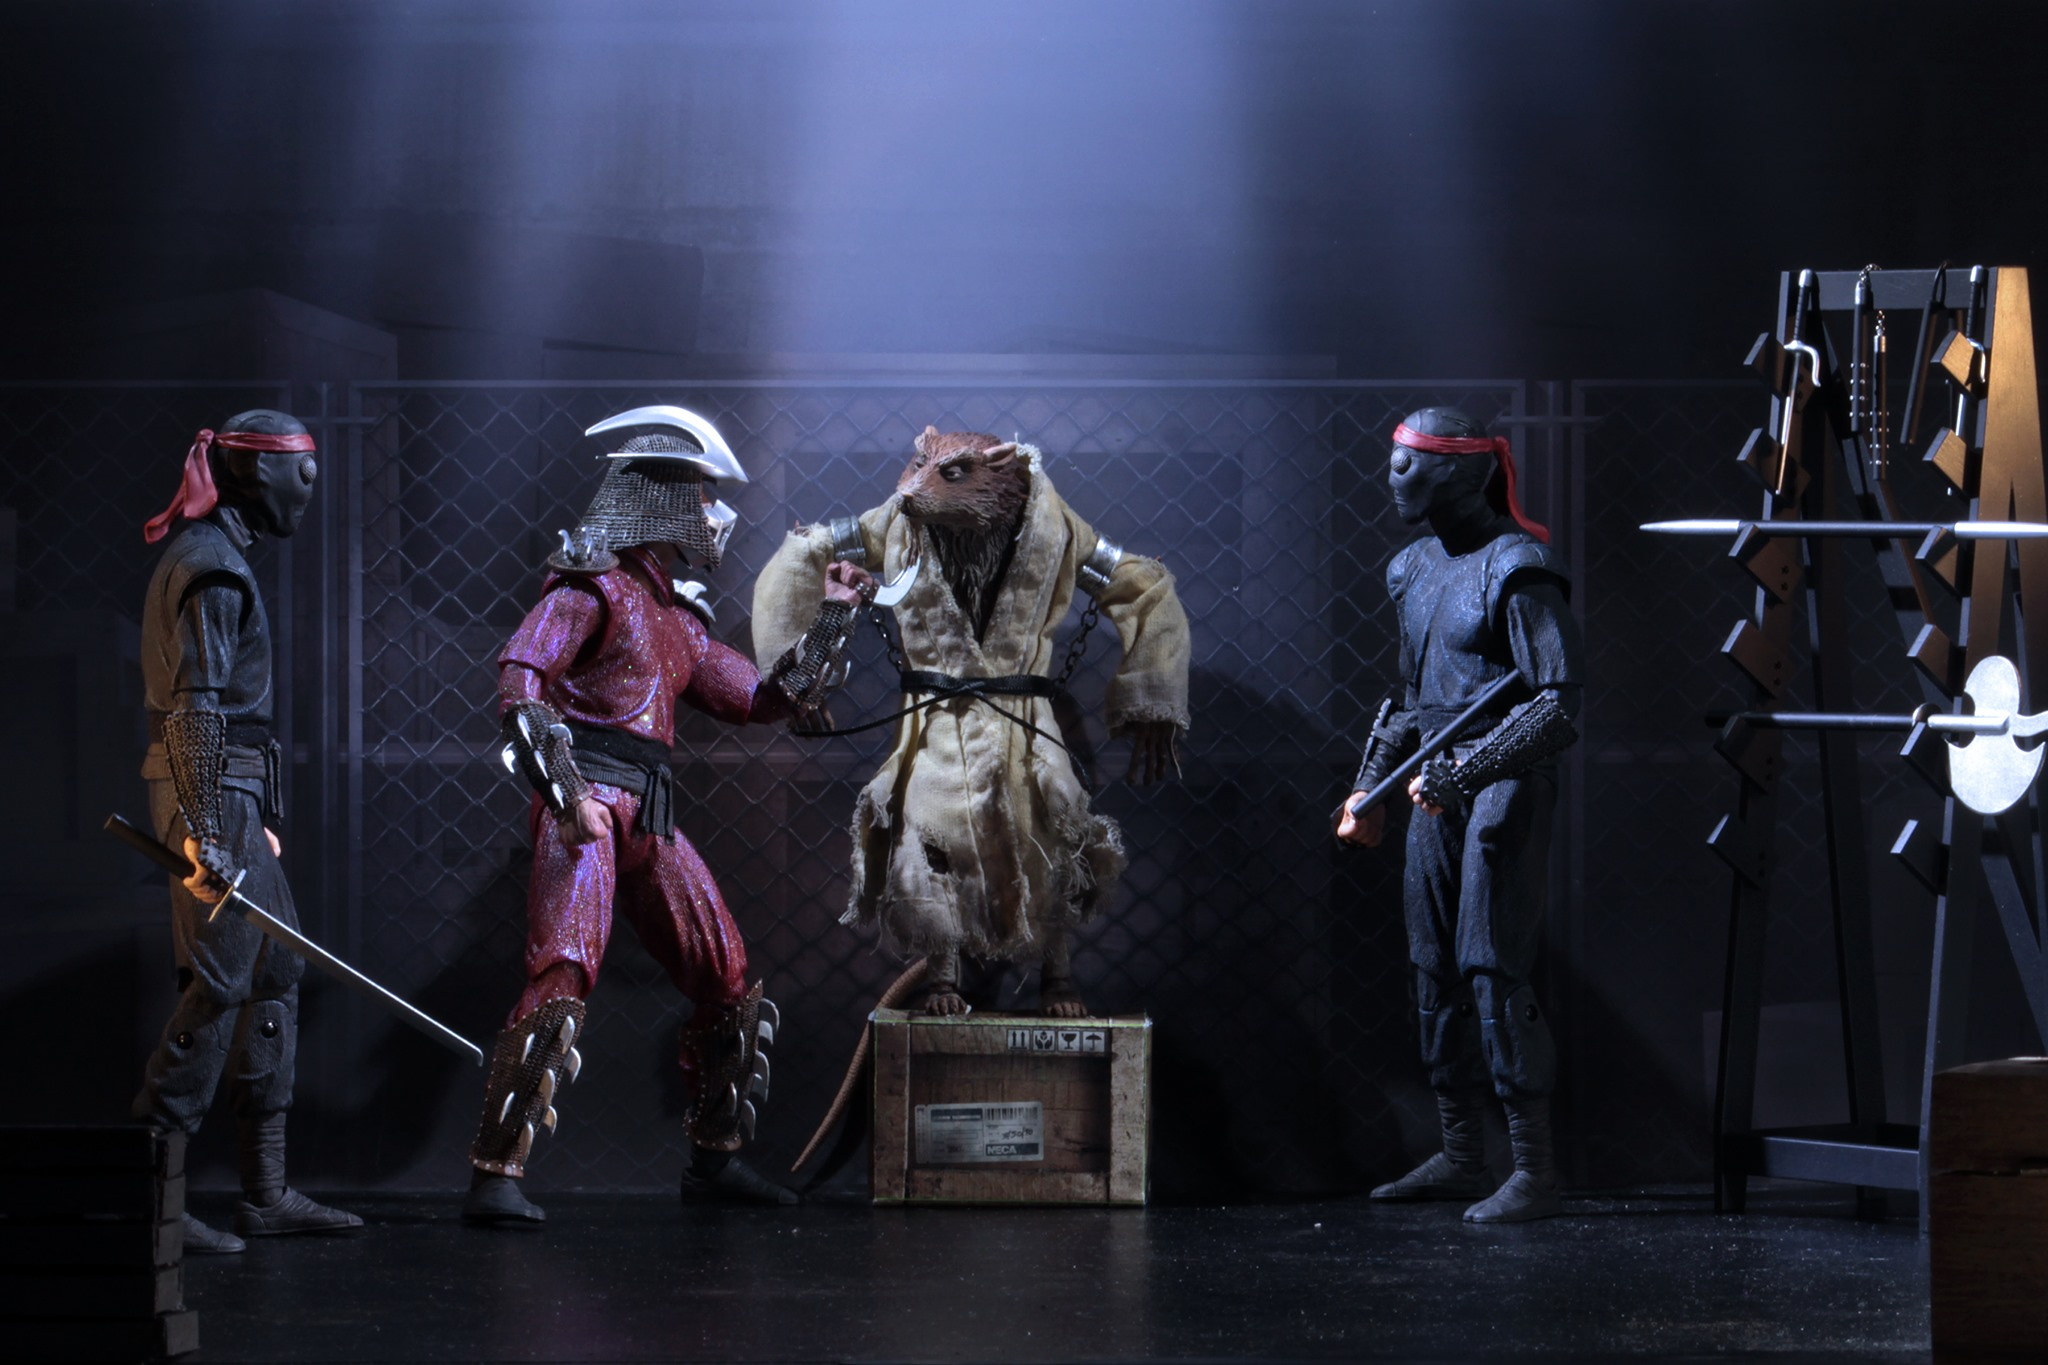 Tmnt 1990 Movie The Capture Of Splinter Sdcc 2019 Exclusive Set